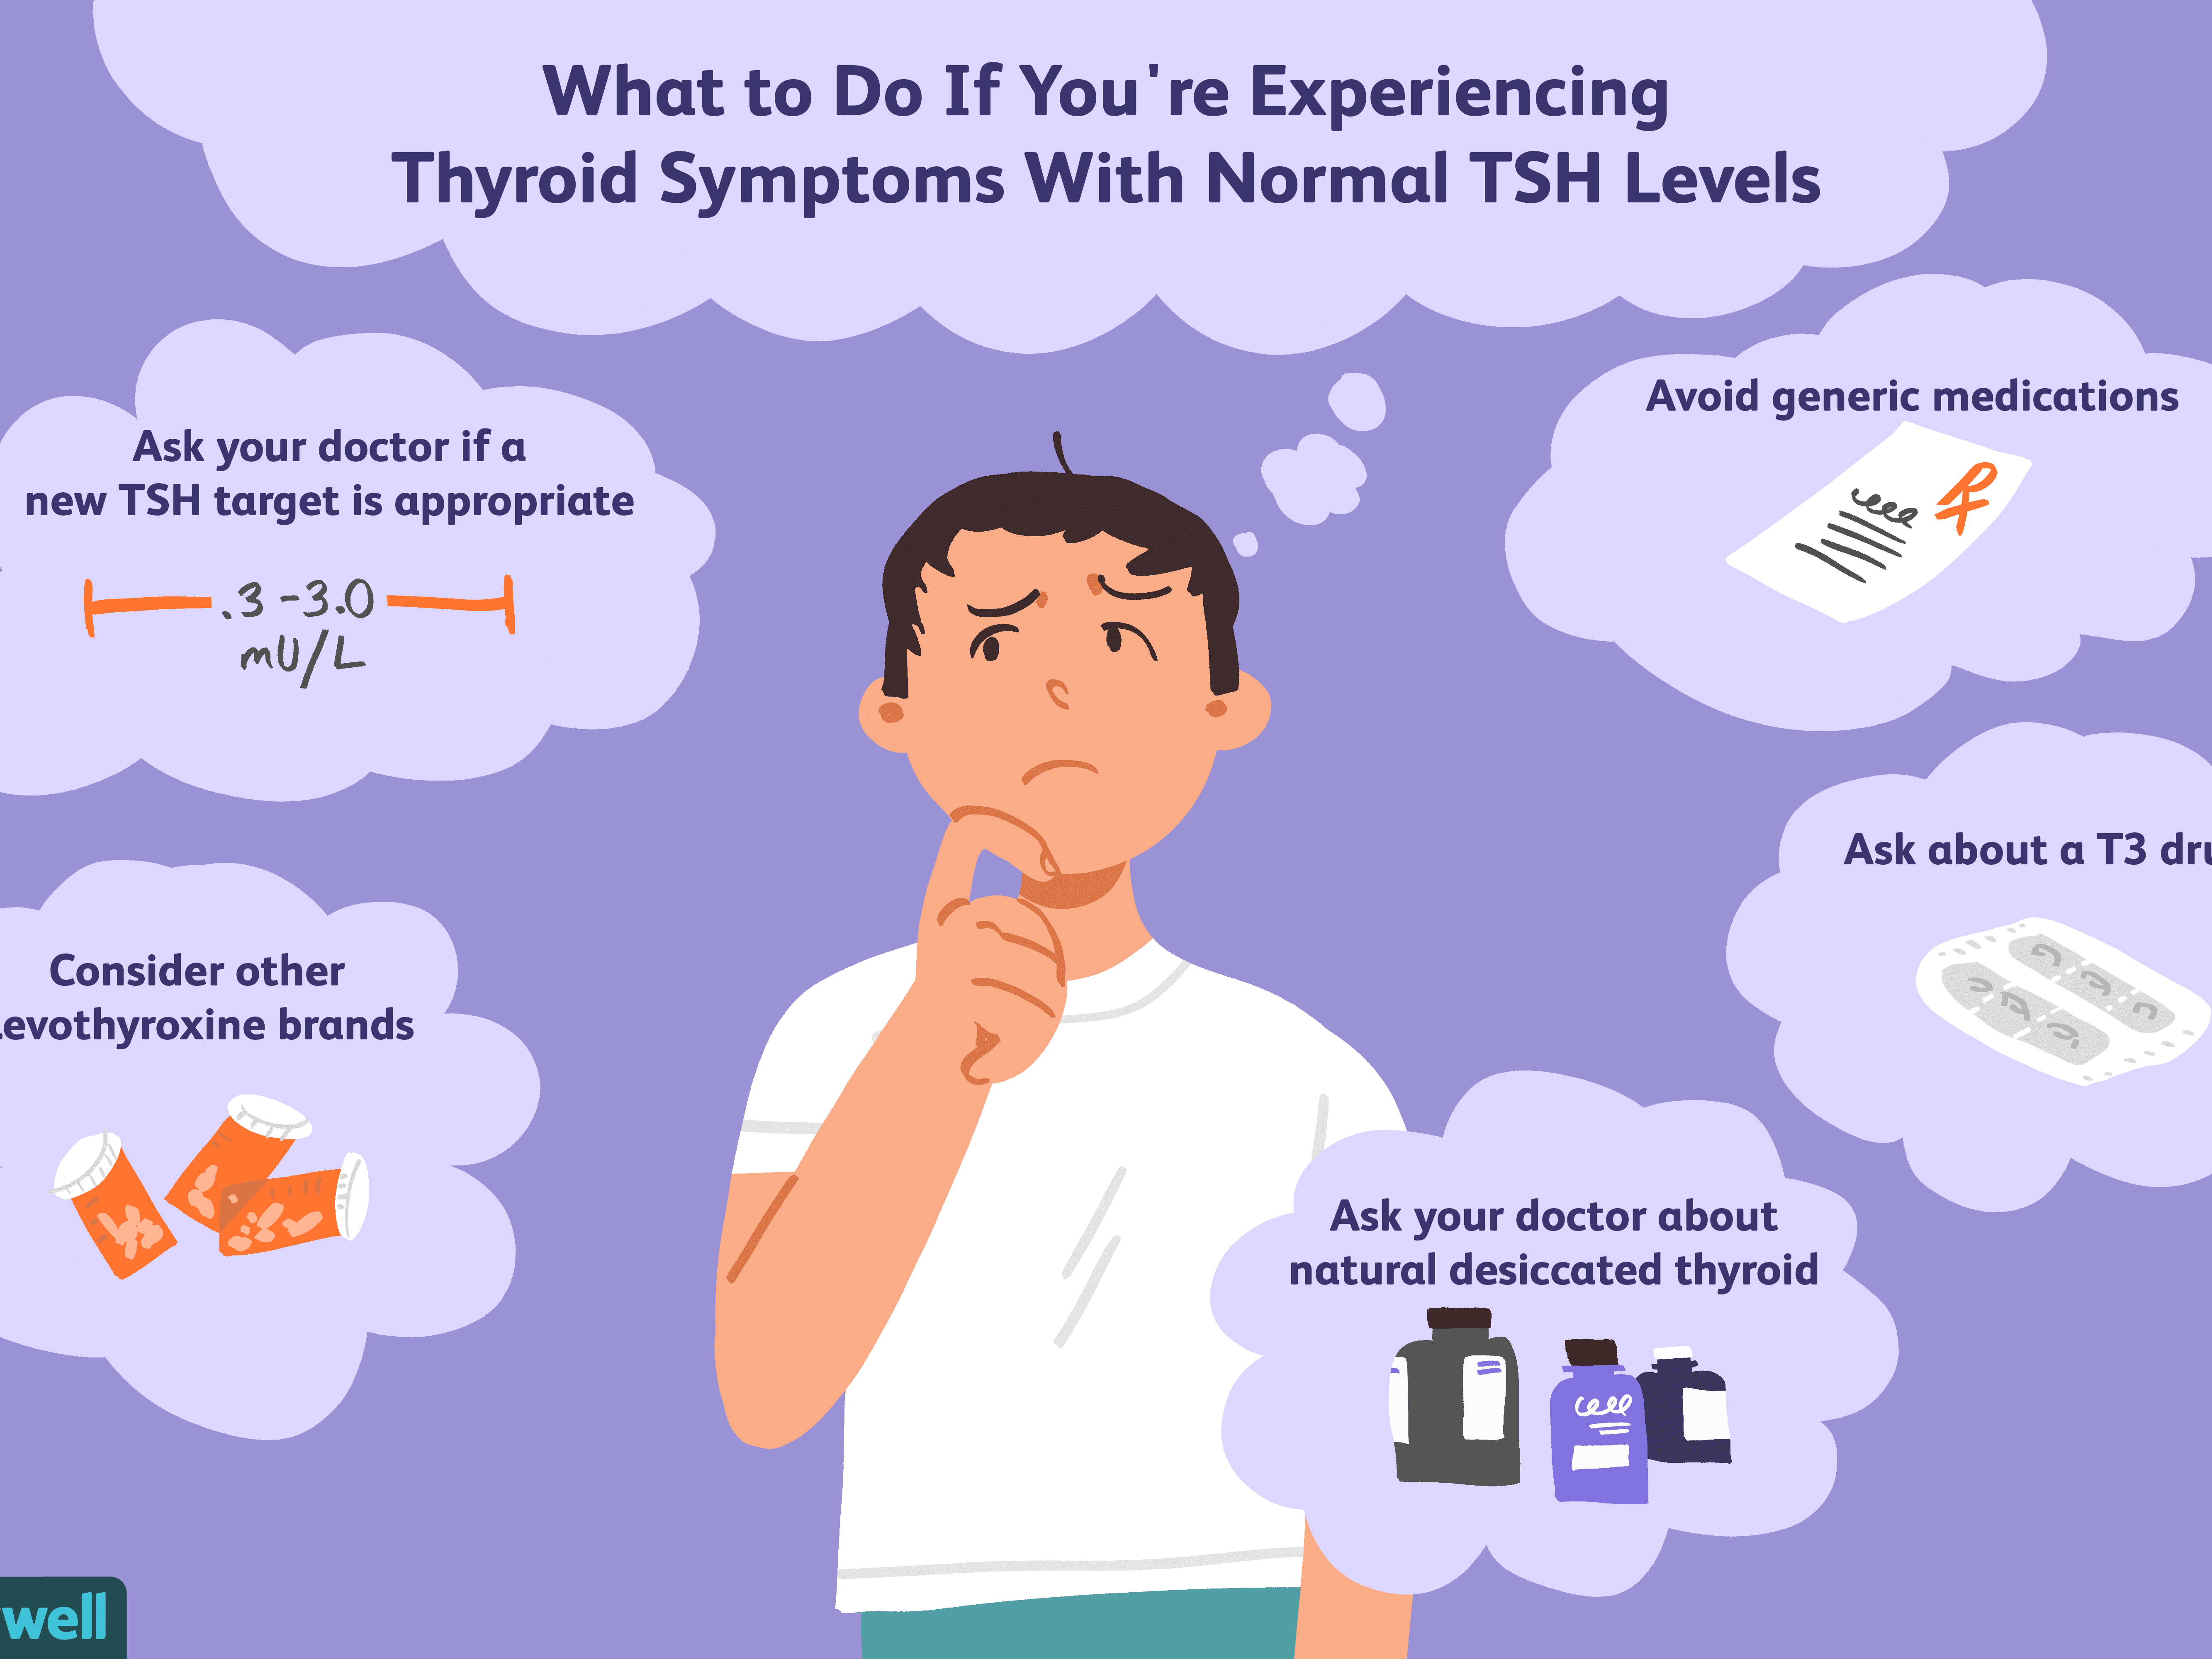 Why Do I Have Thyroid Symptoms If My Tsh Is Normal